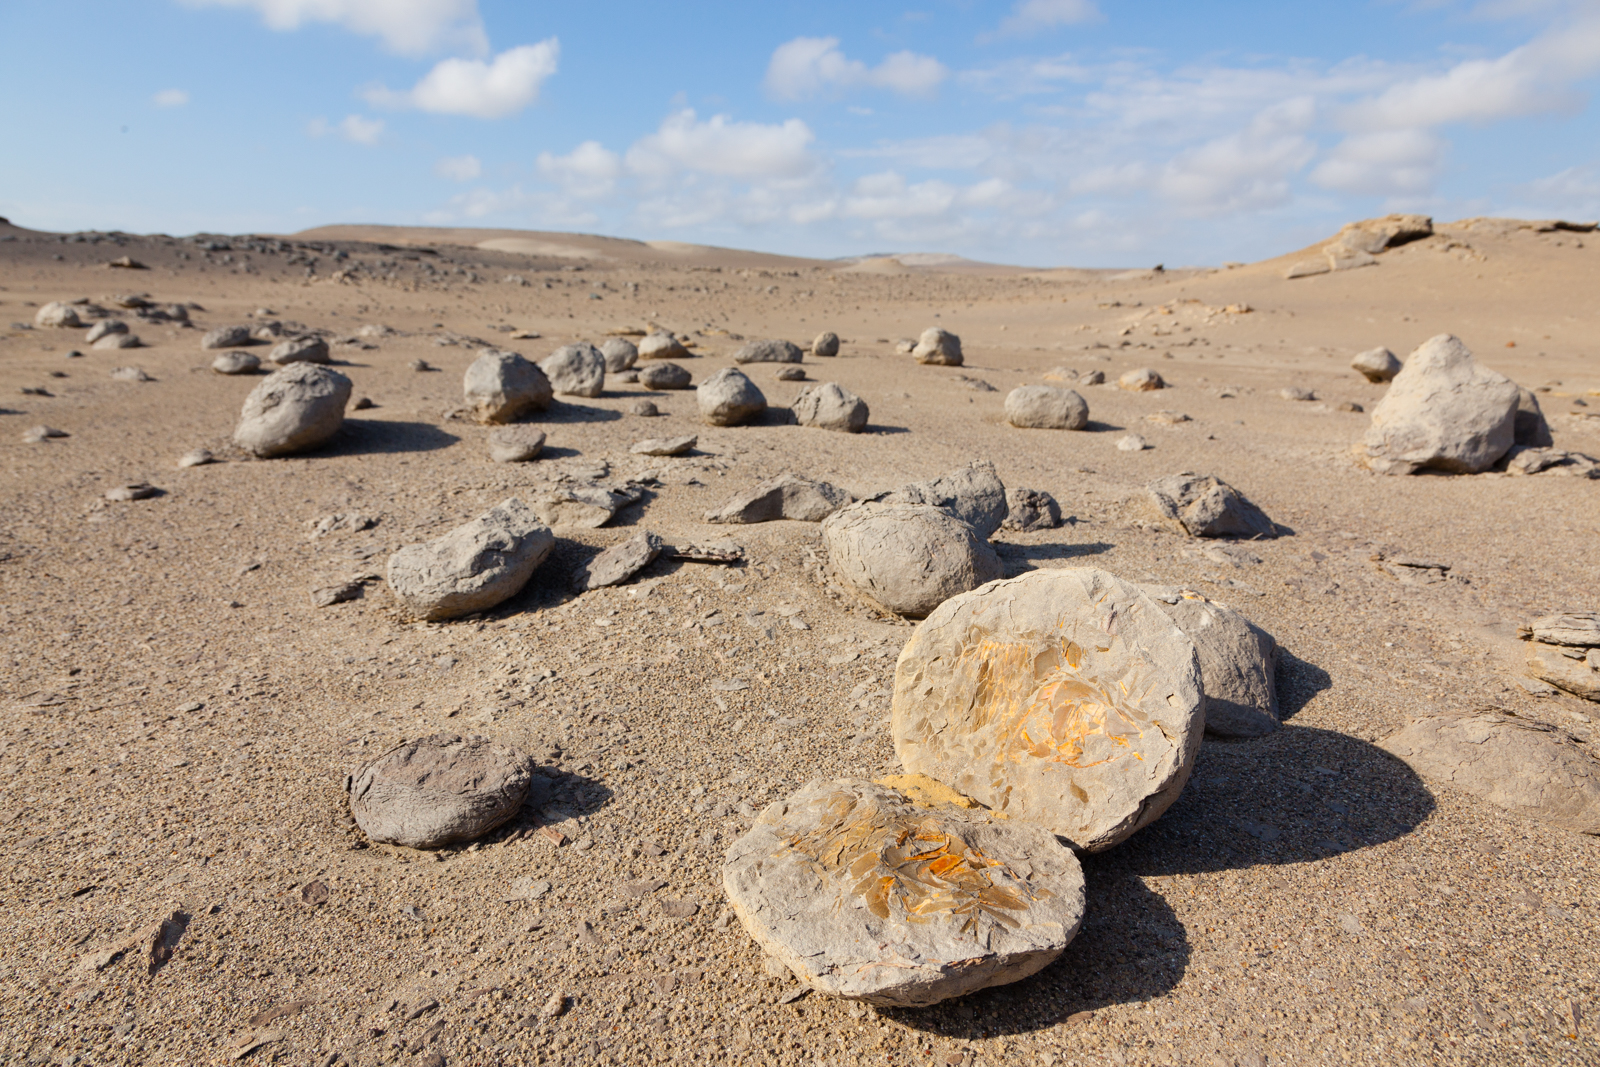 Fish fossils litter the desert floor. Credit: Andy Isaacson